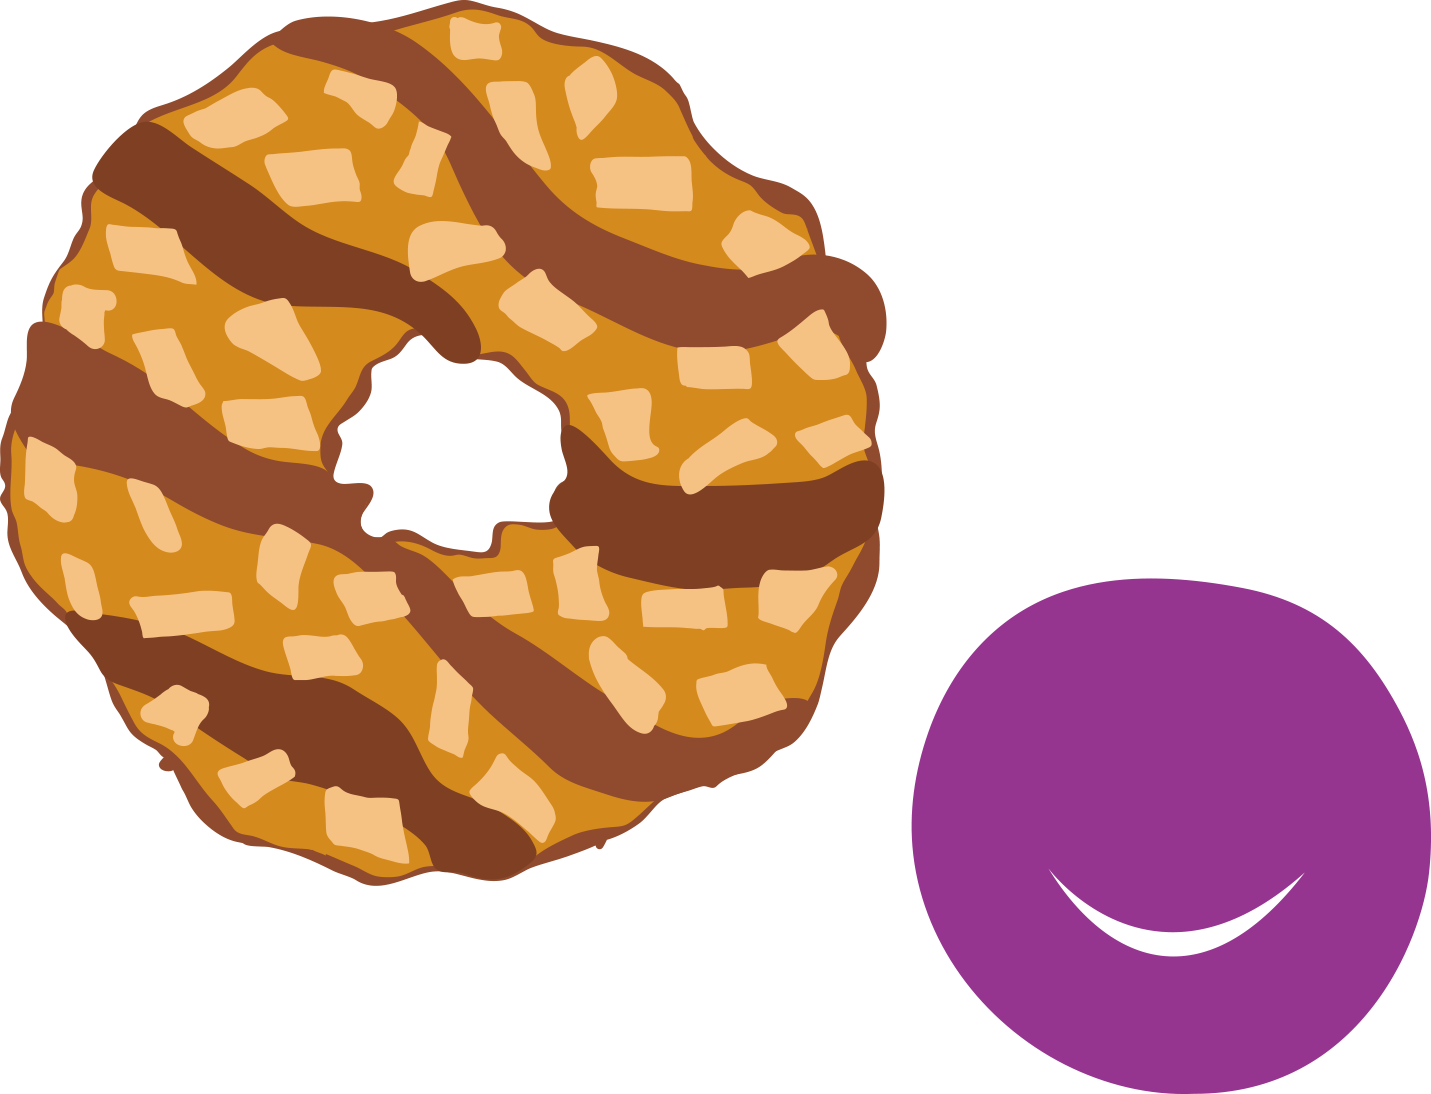 Doughnut clipart sugary food. Chocolate chip cookie brownie